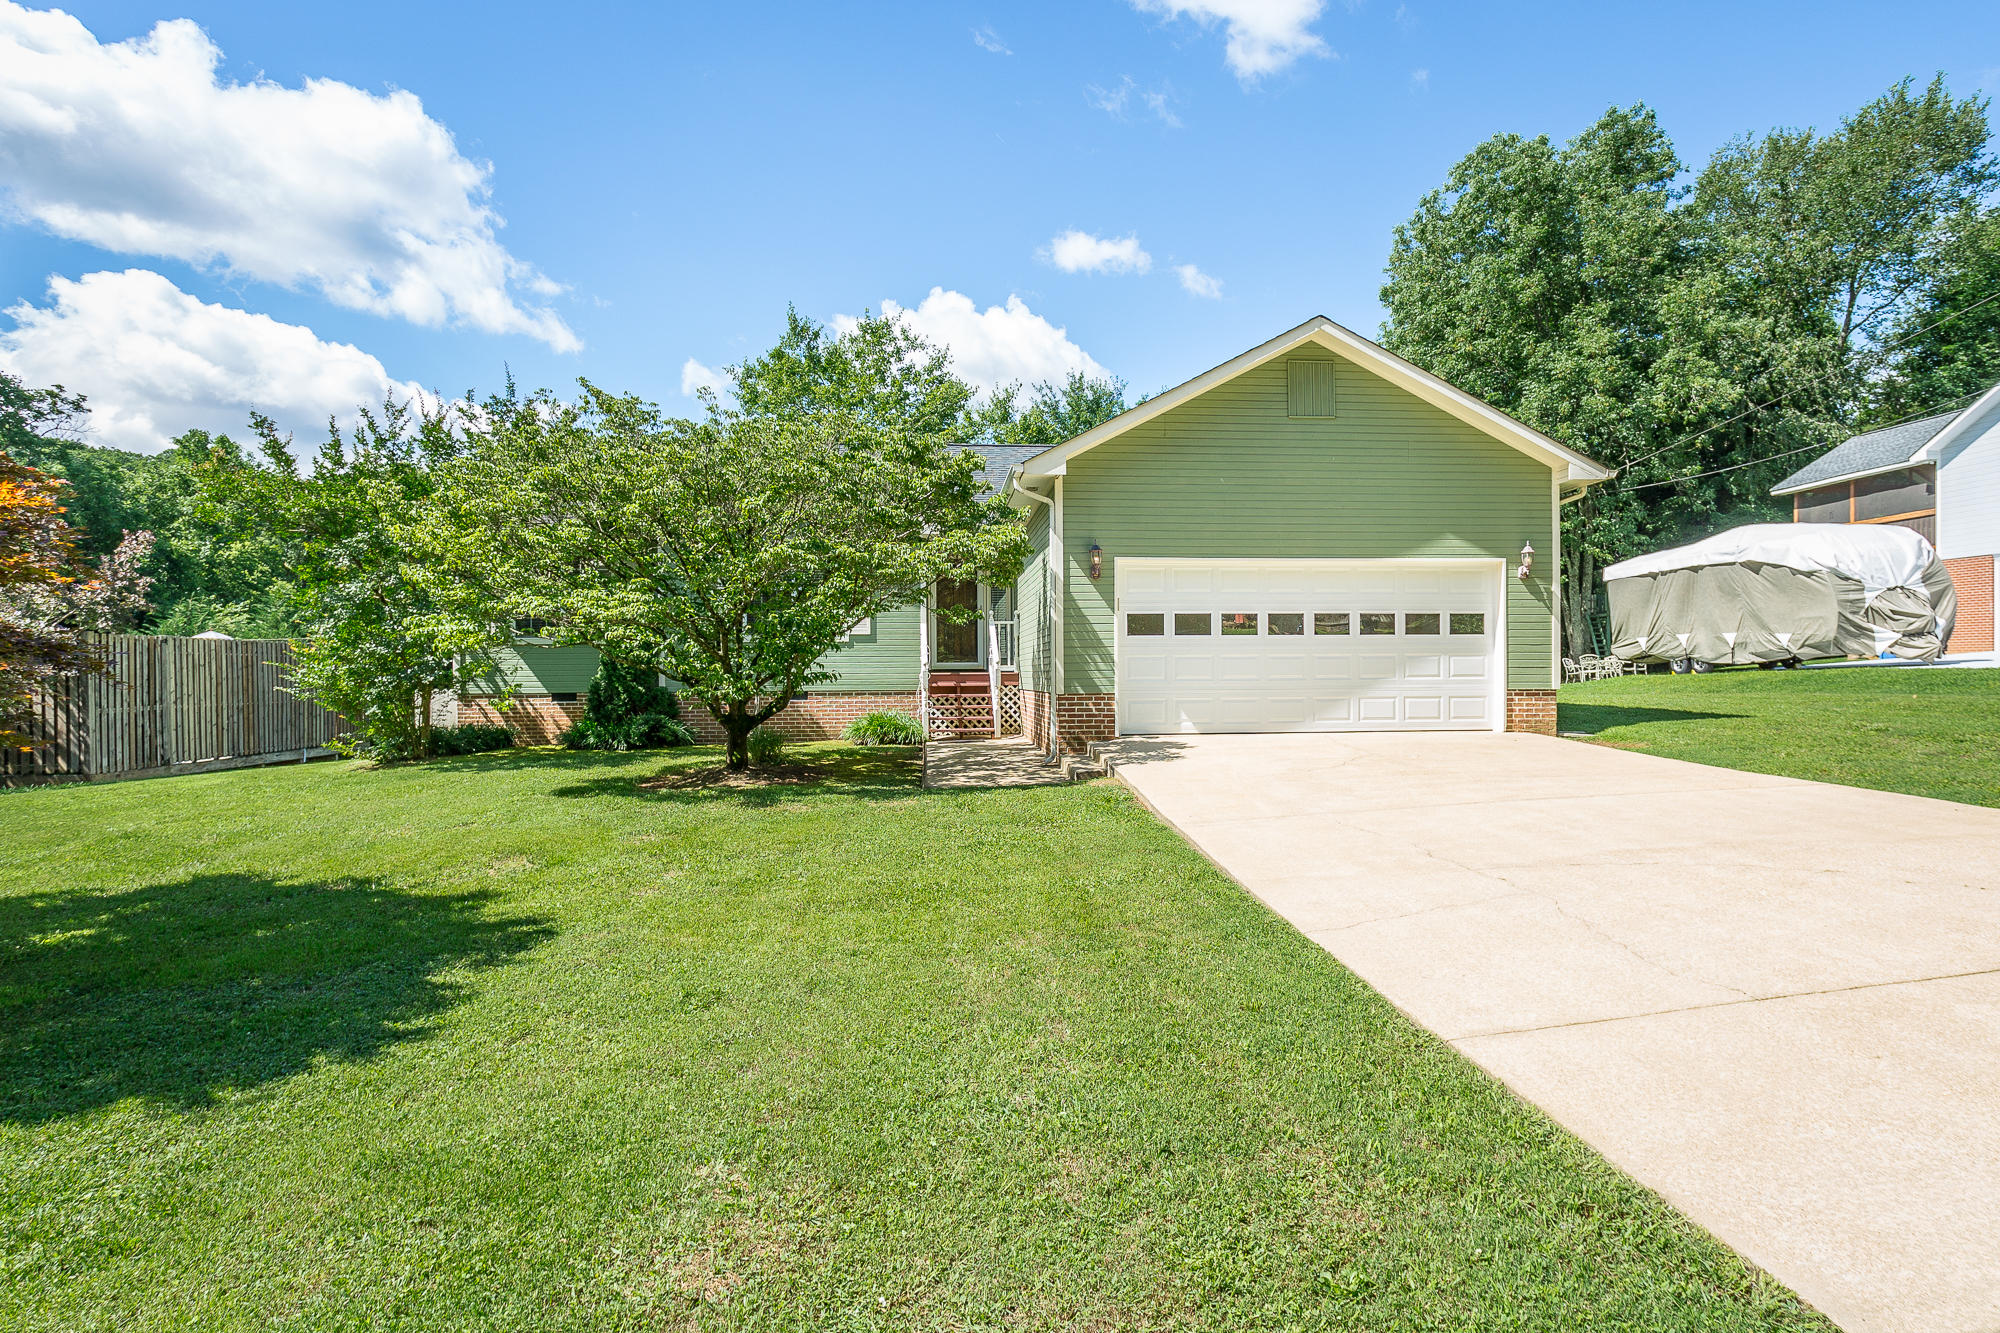 608 Courtney Ln, Chattanooga, TN 37415